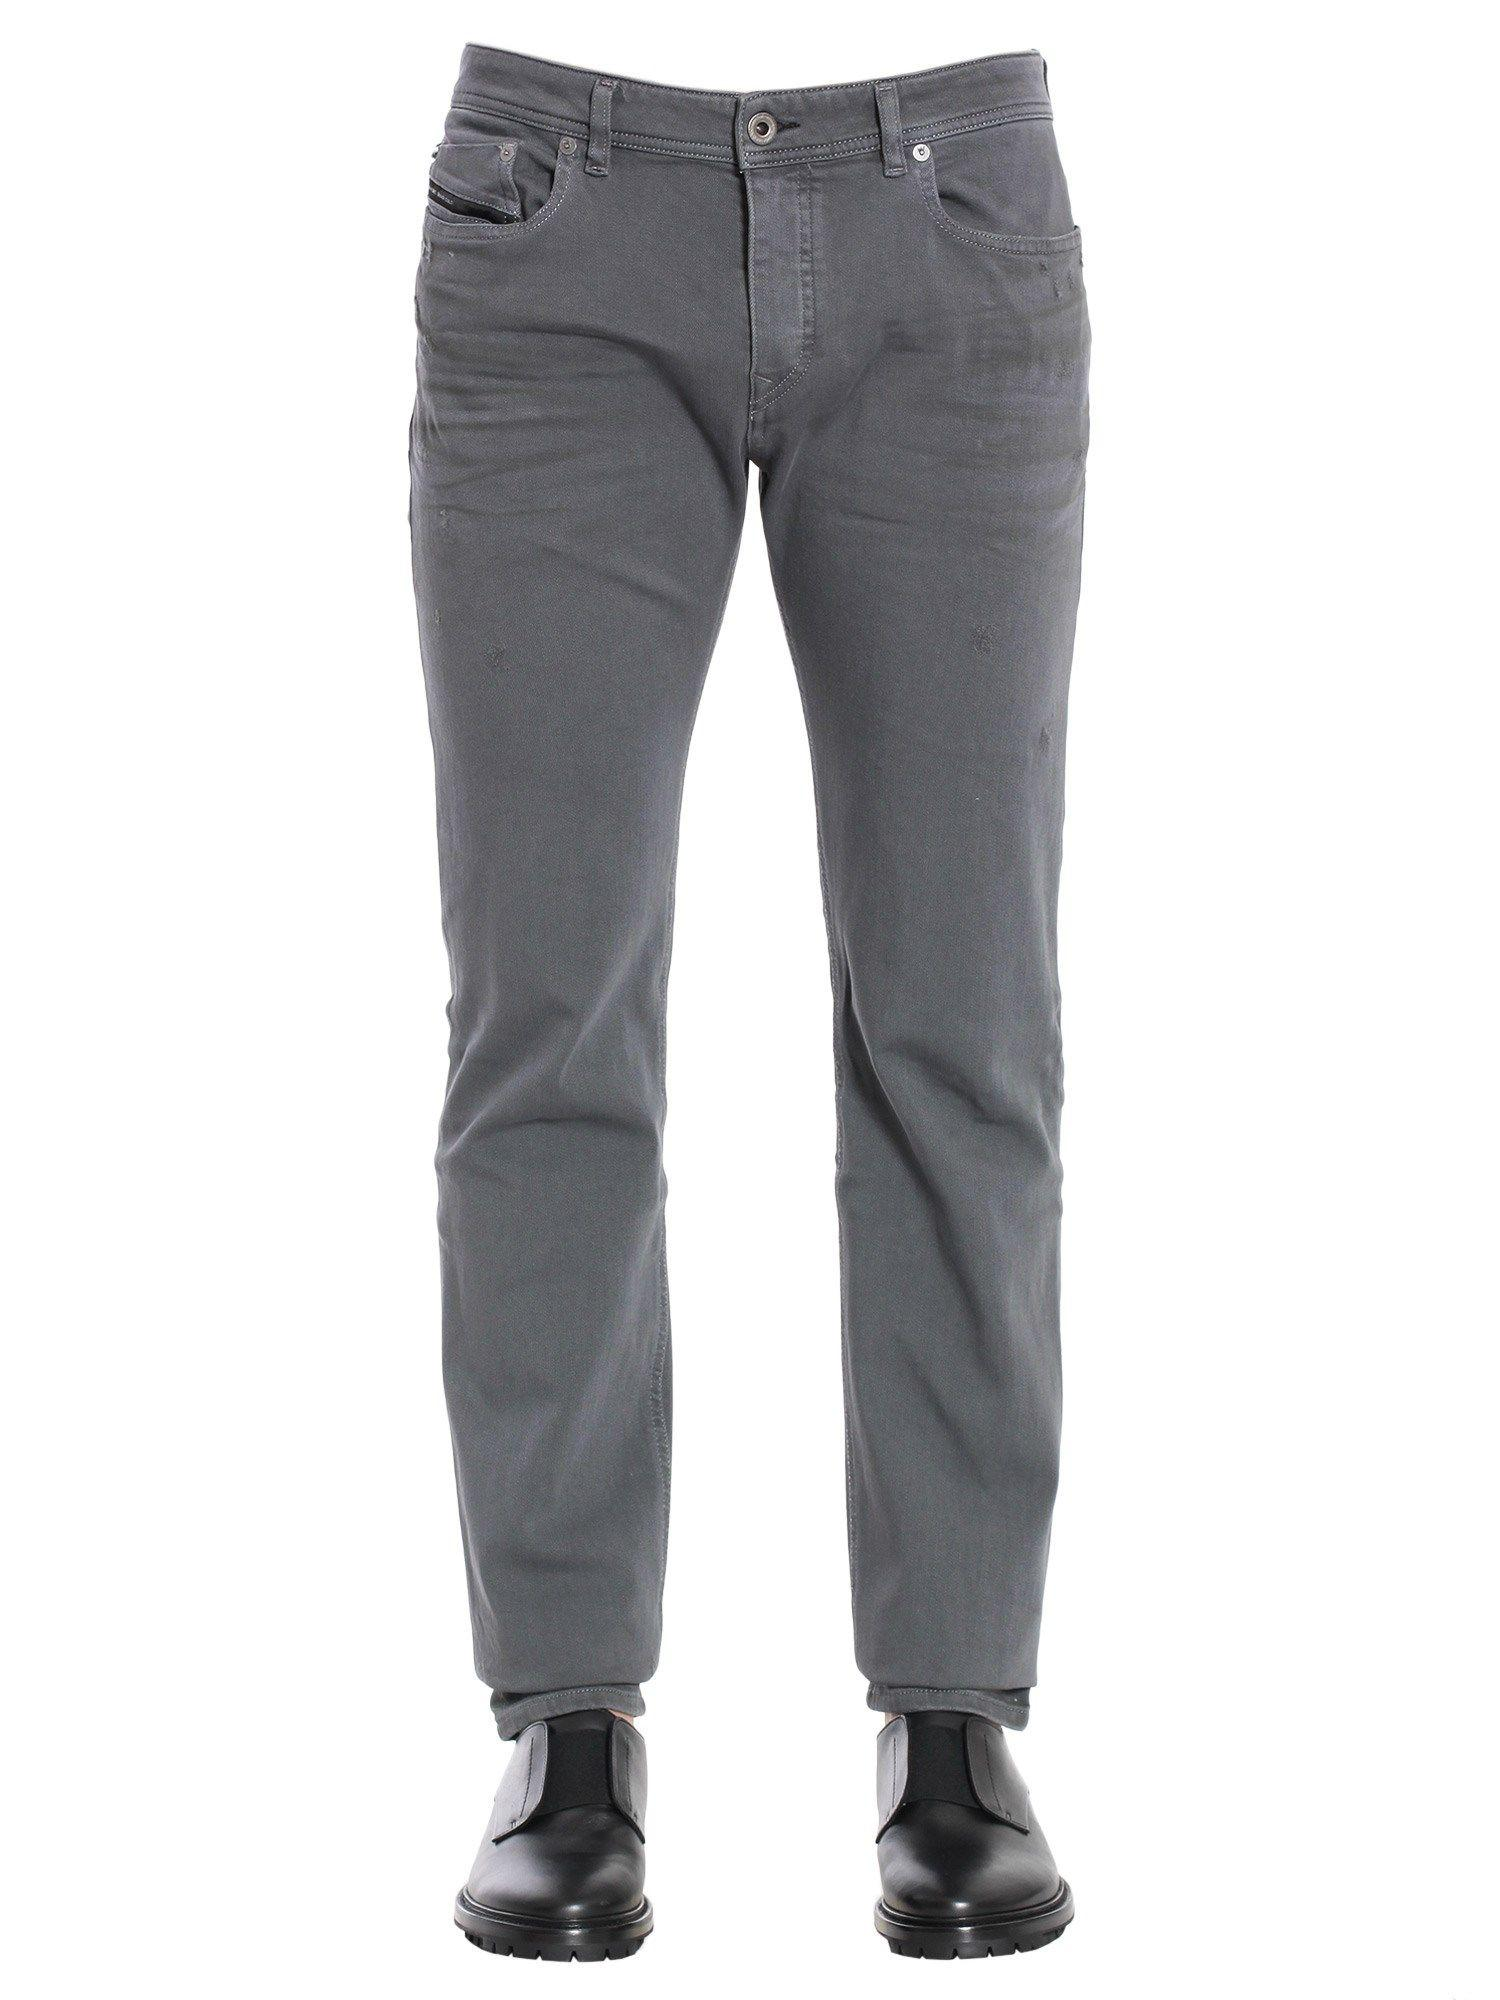 Diesel Black Gold Type-2512 Jeans In Grigio